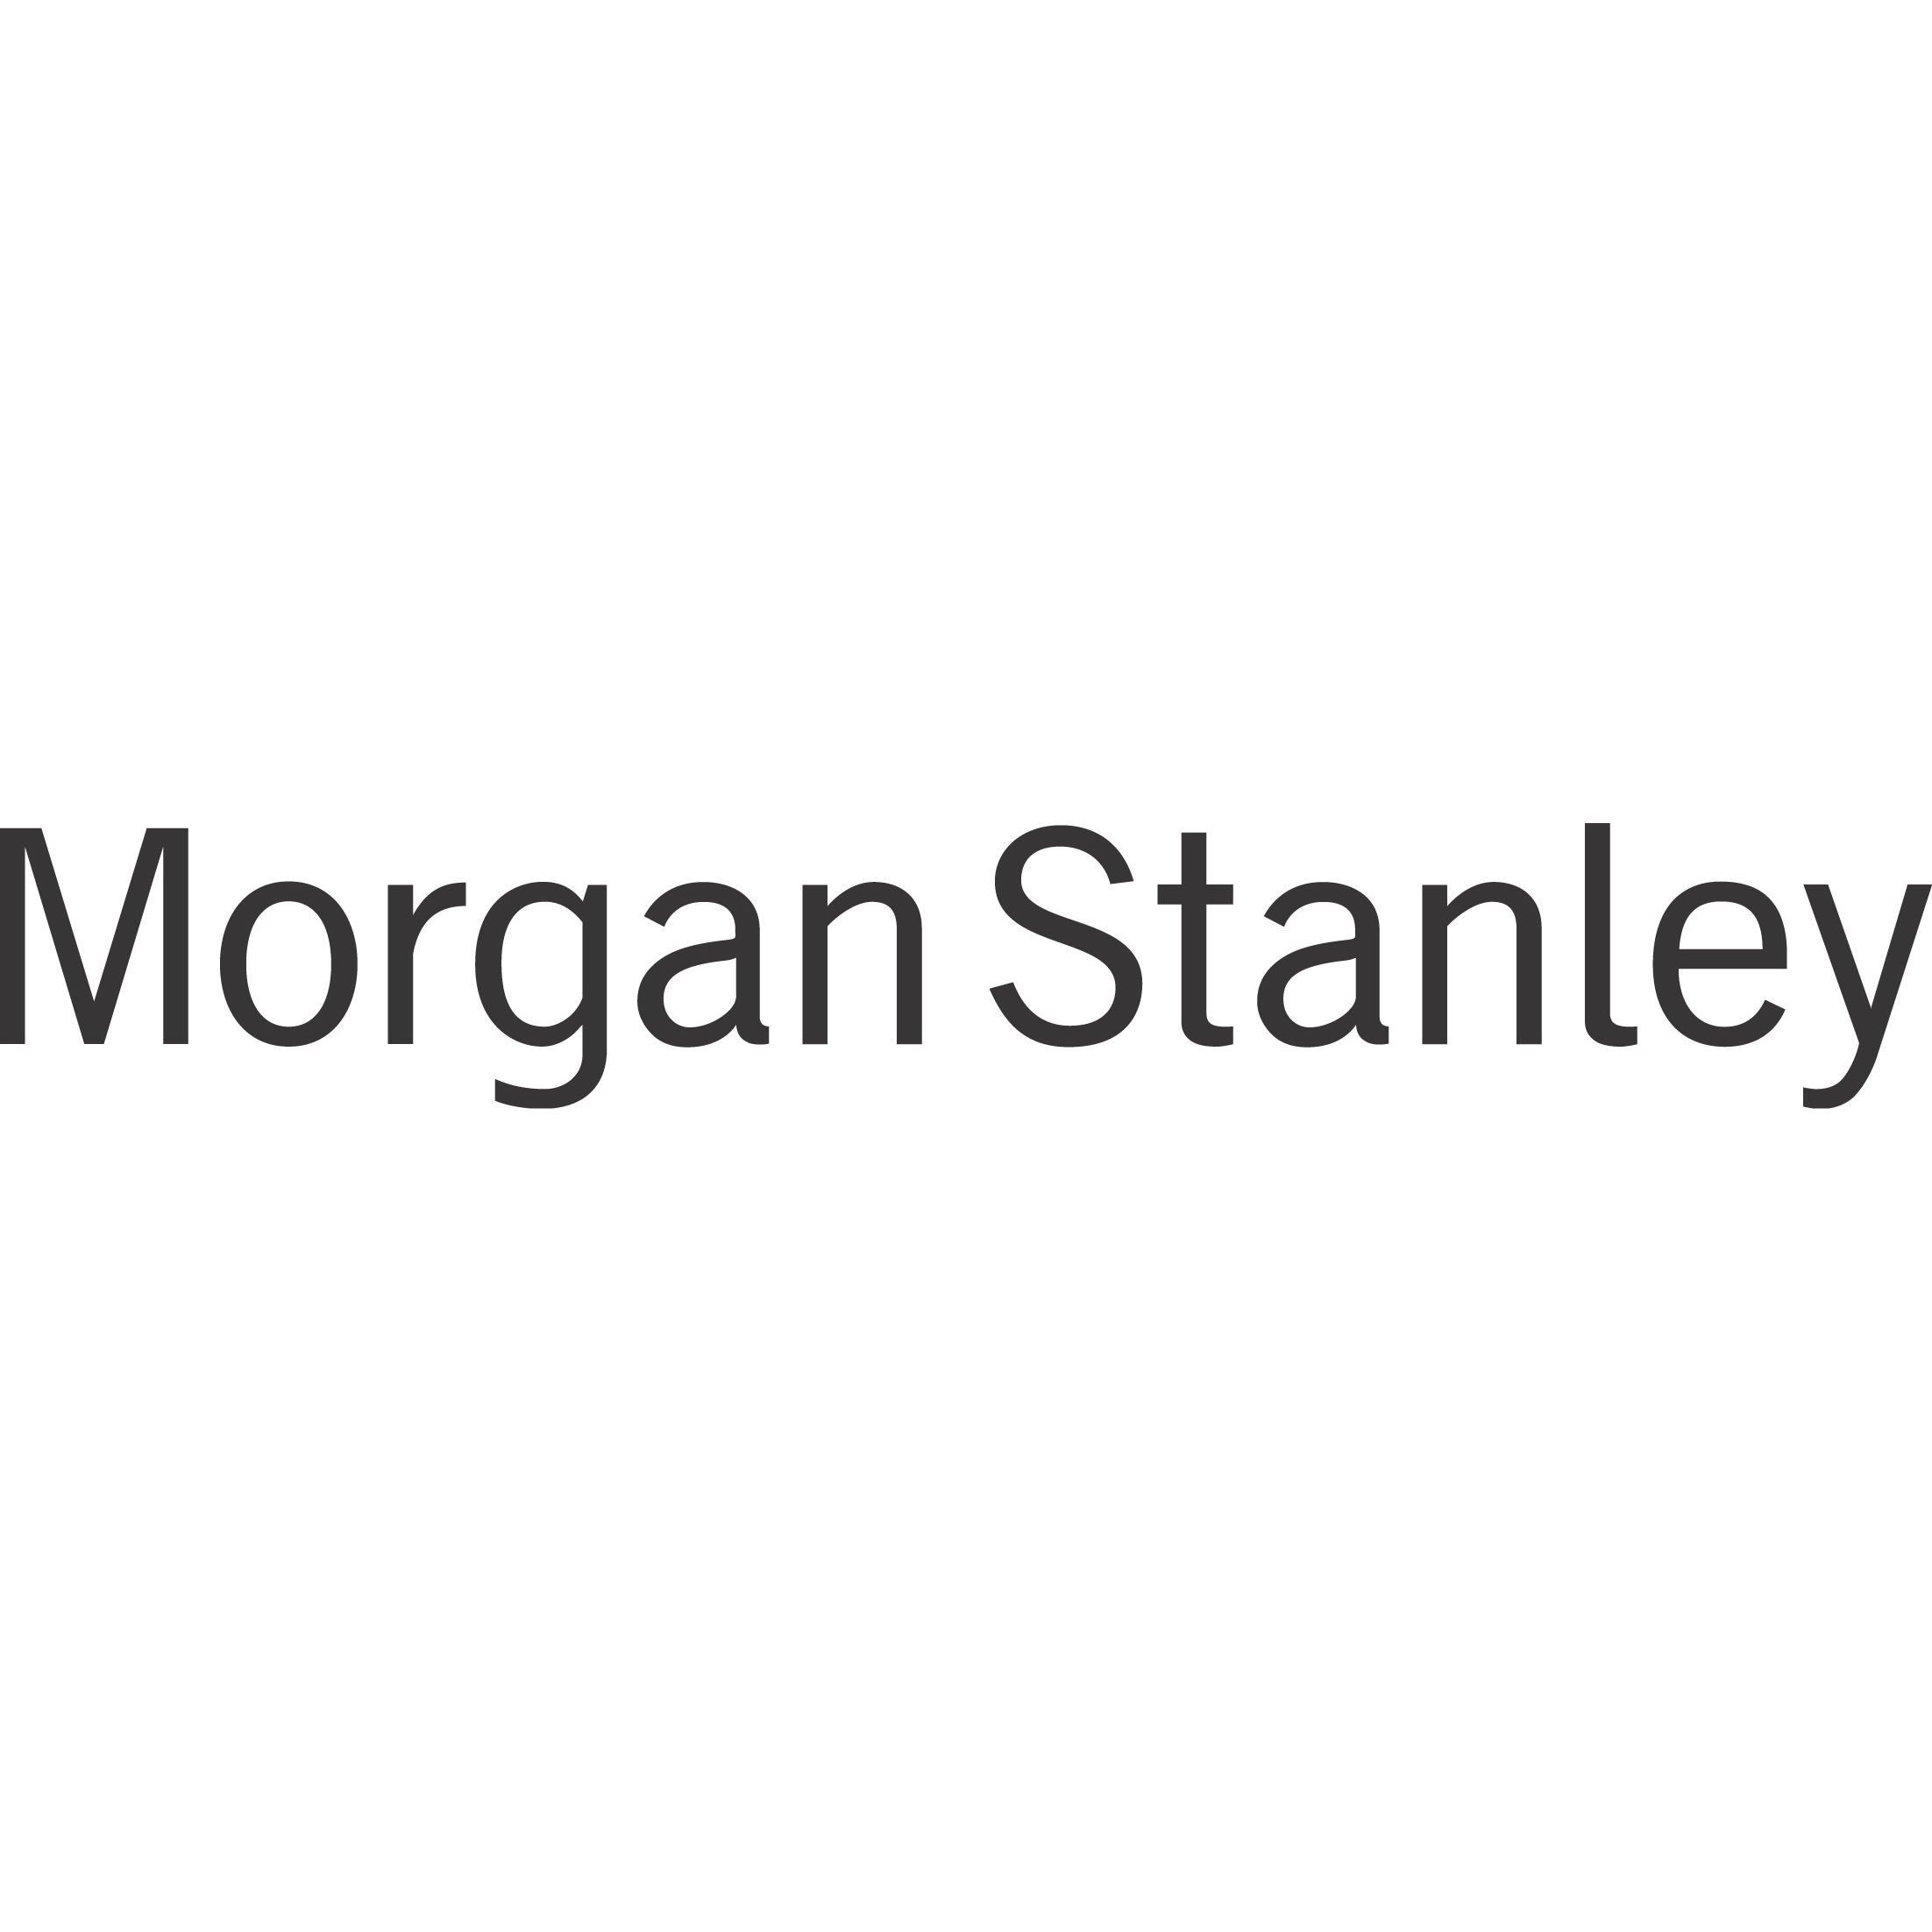 Fran Stein Simmons - Morgan Stanley | Financial Advisor in Miami,Florida